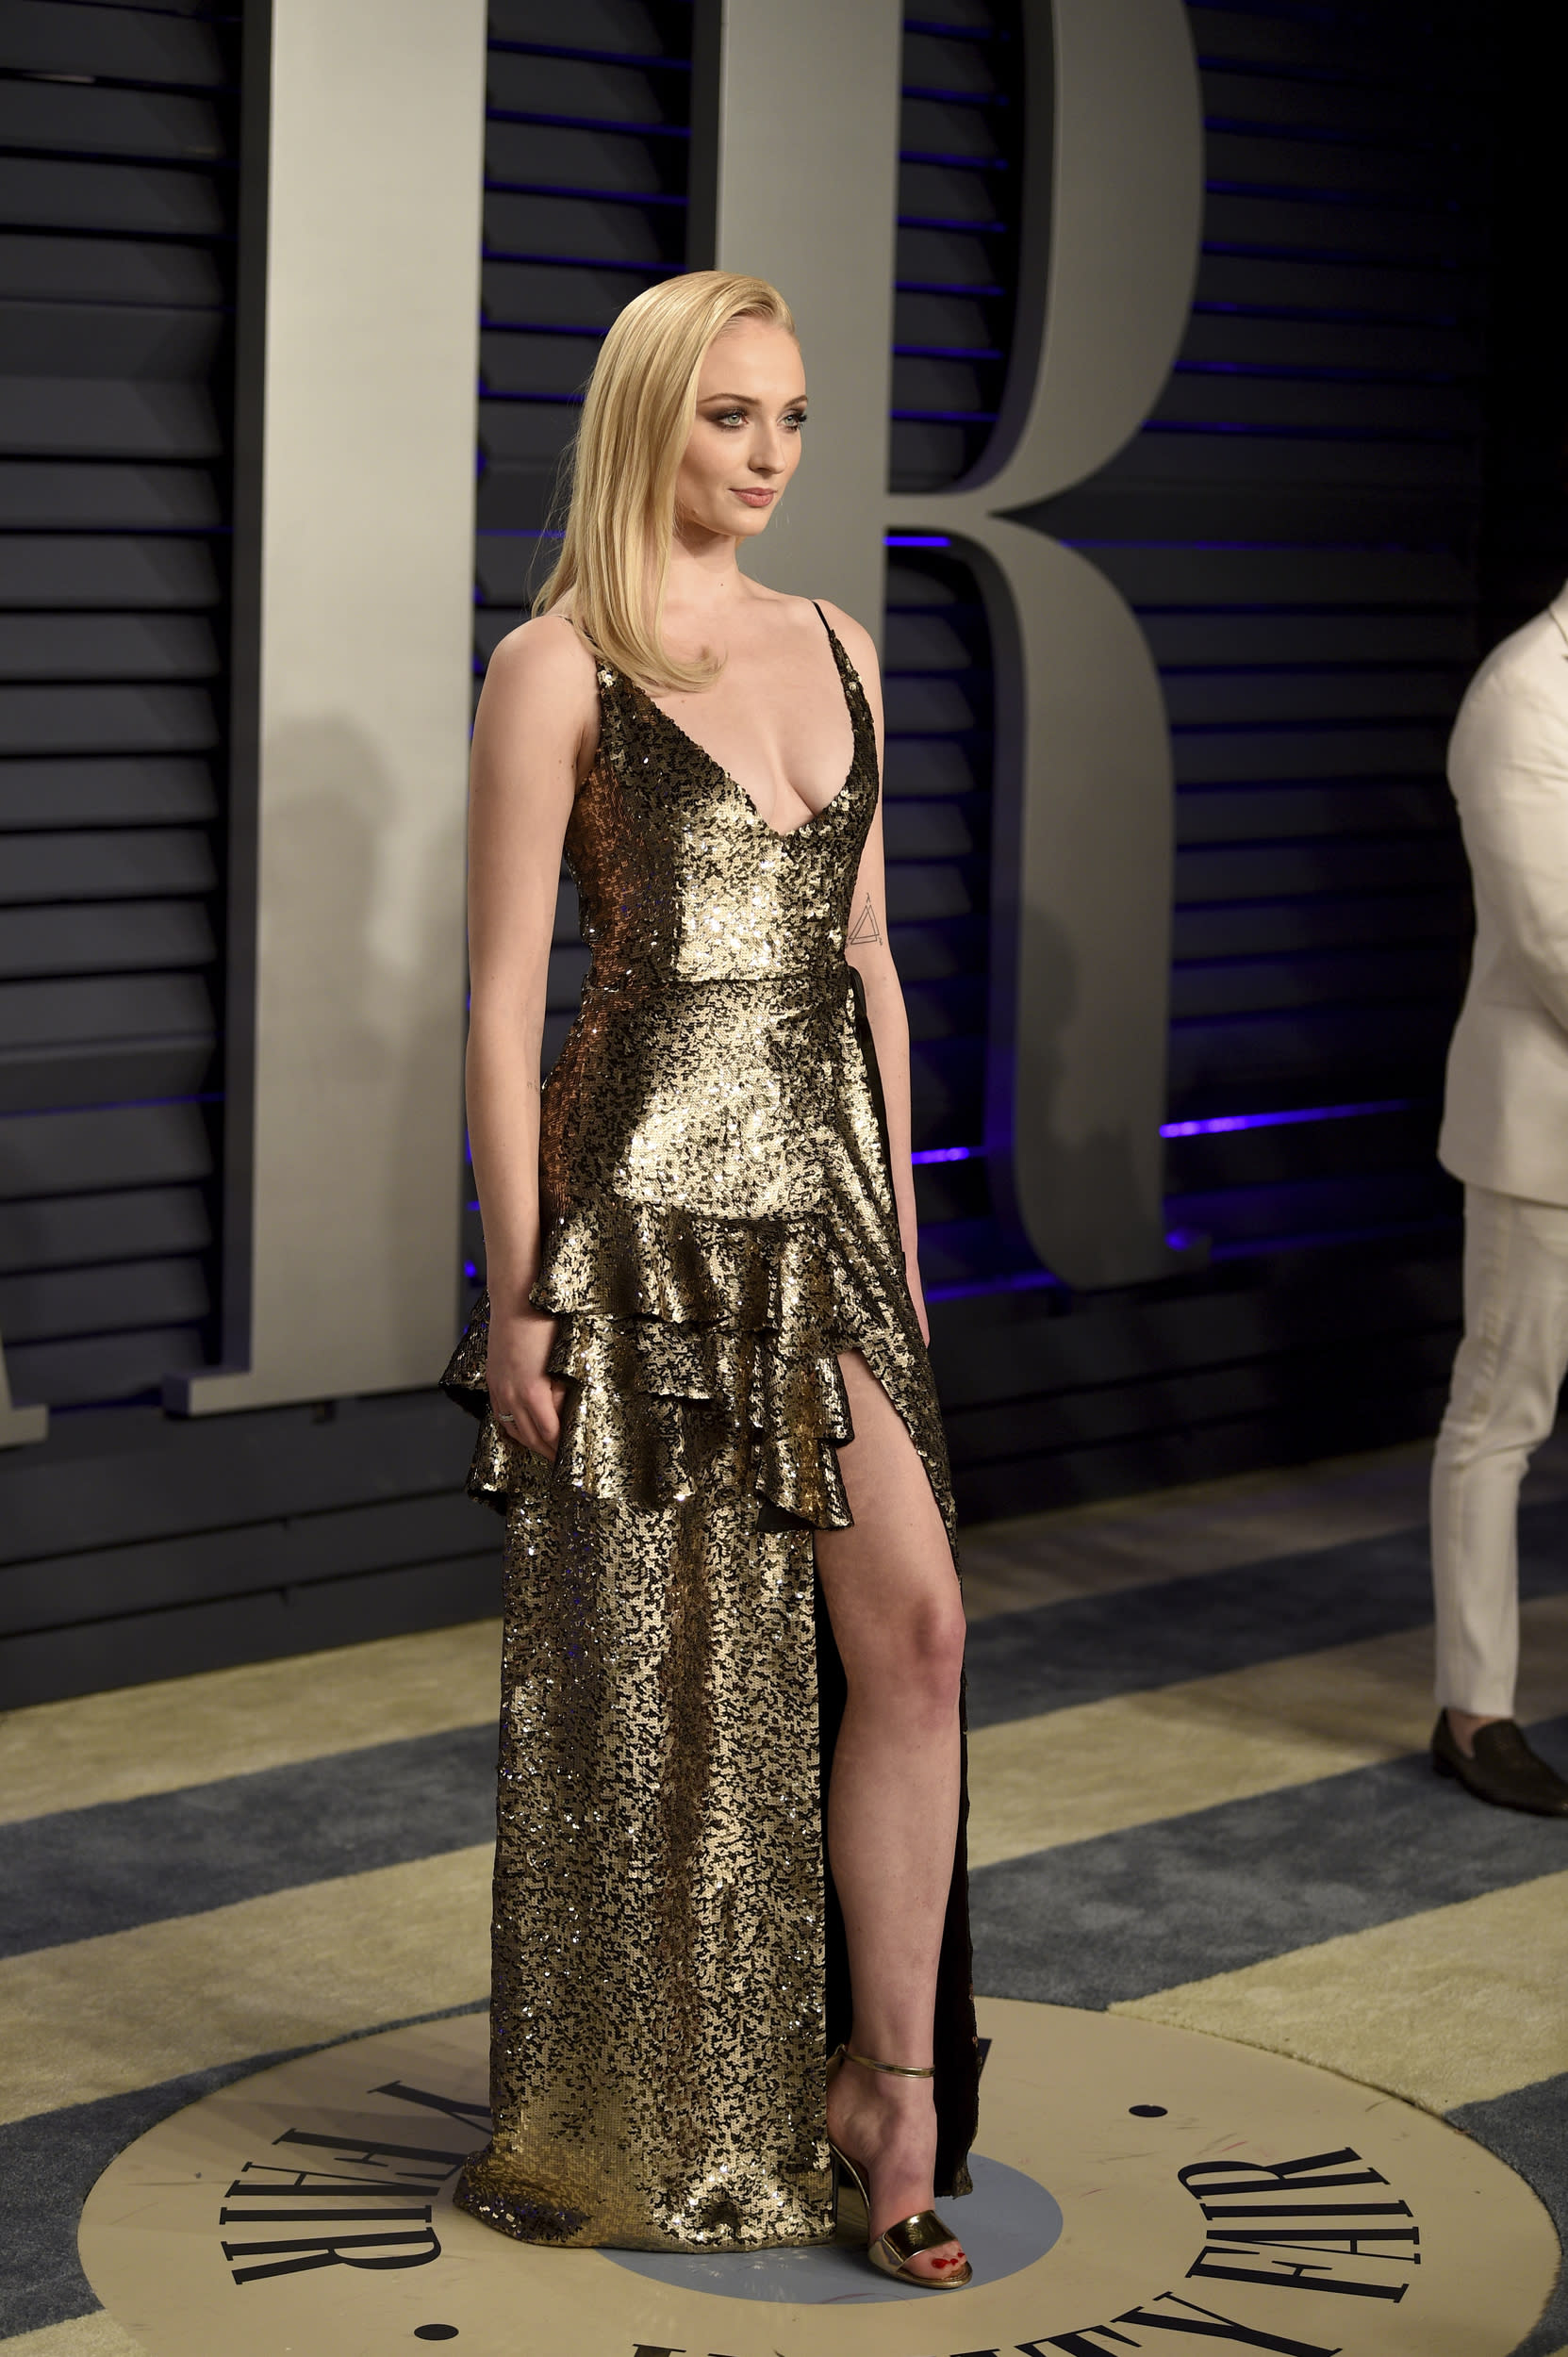 Sophie Turner arrives at the Vanity Fair Oscar Party on Sunday, Feb. 24, 2019, in Beverly Hills, Calif. (Photo by Evan Agostini/Invision/AP)